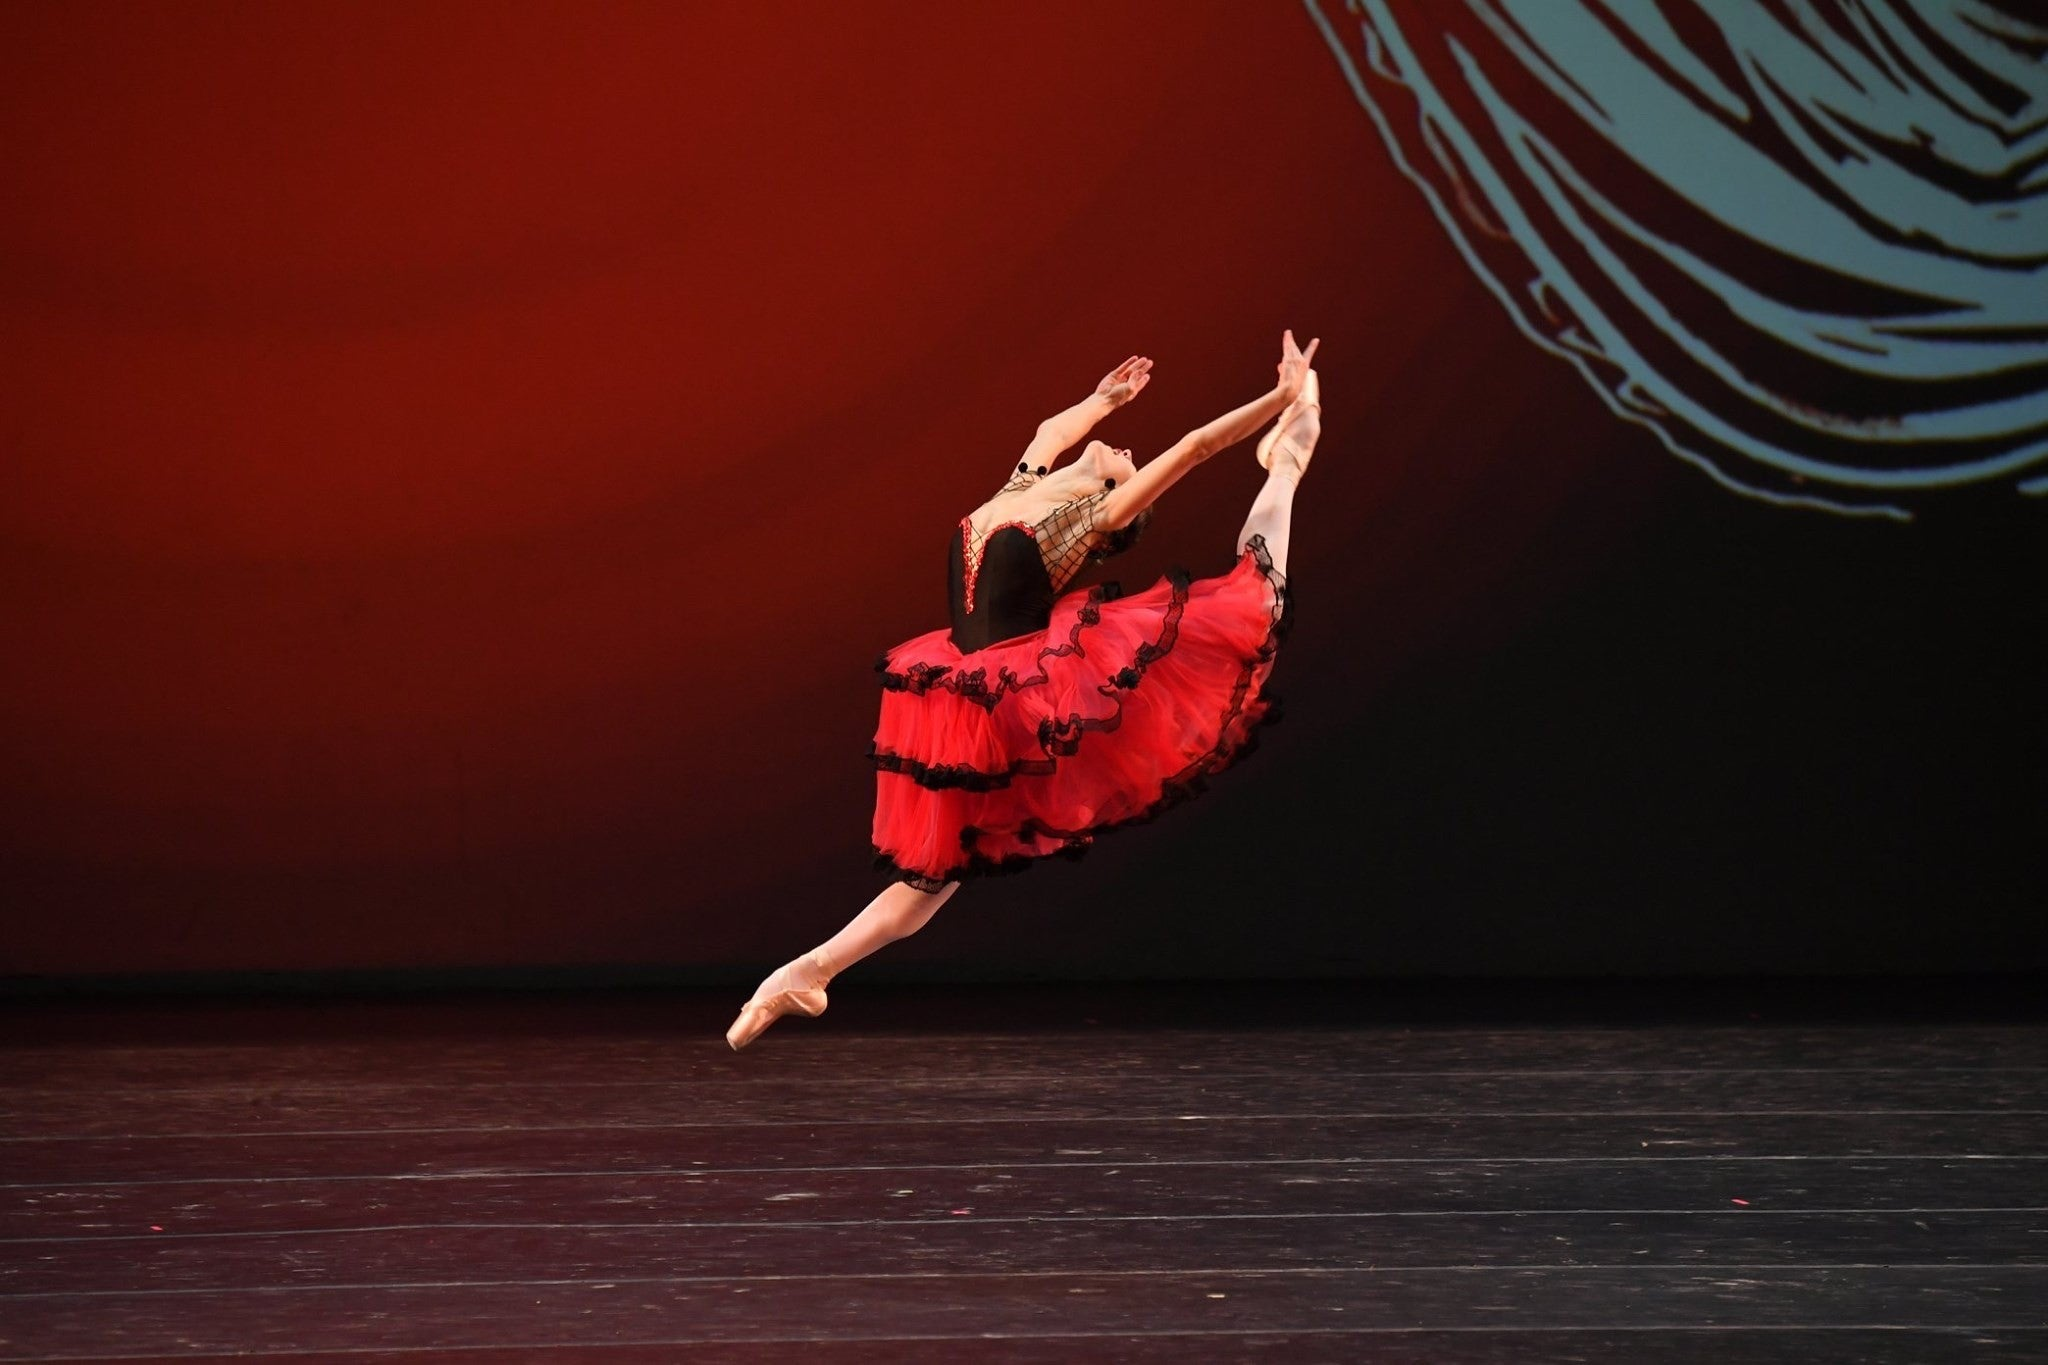 Christine Shevchenko ballet dancing on stage